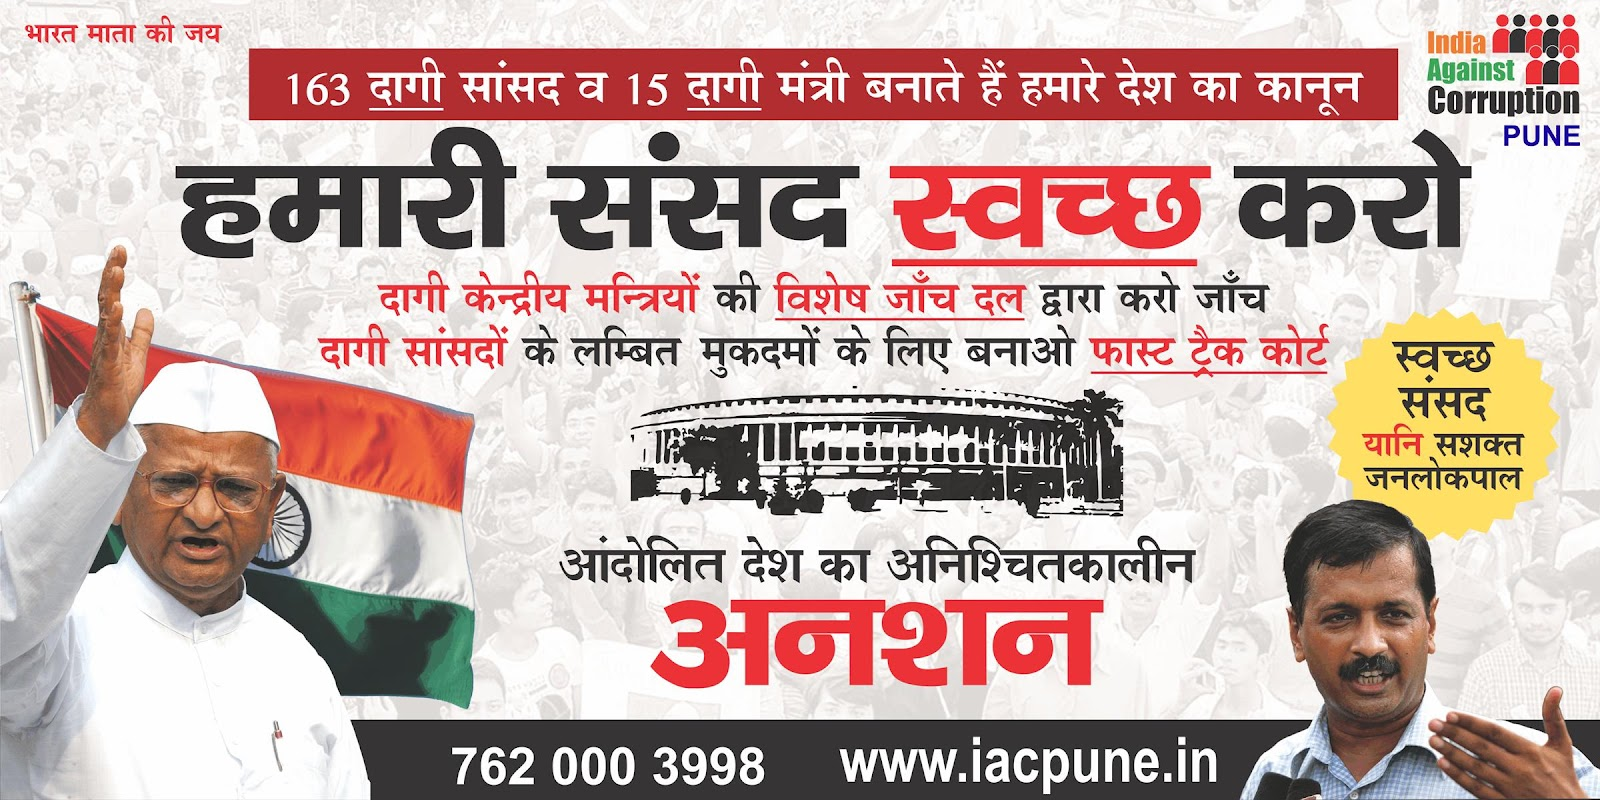 India Against Corruption, Pune: Design Files for Banners ...